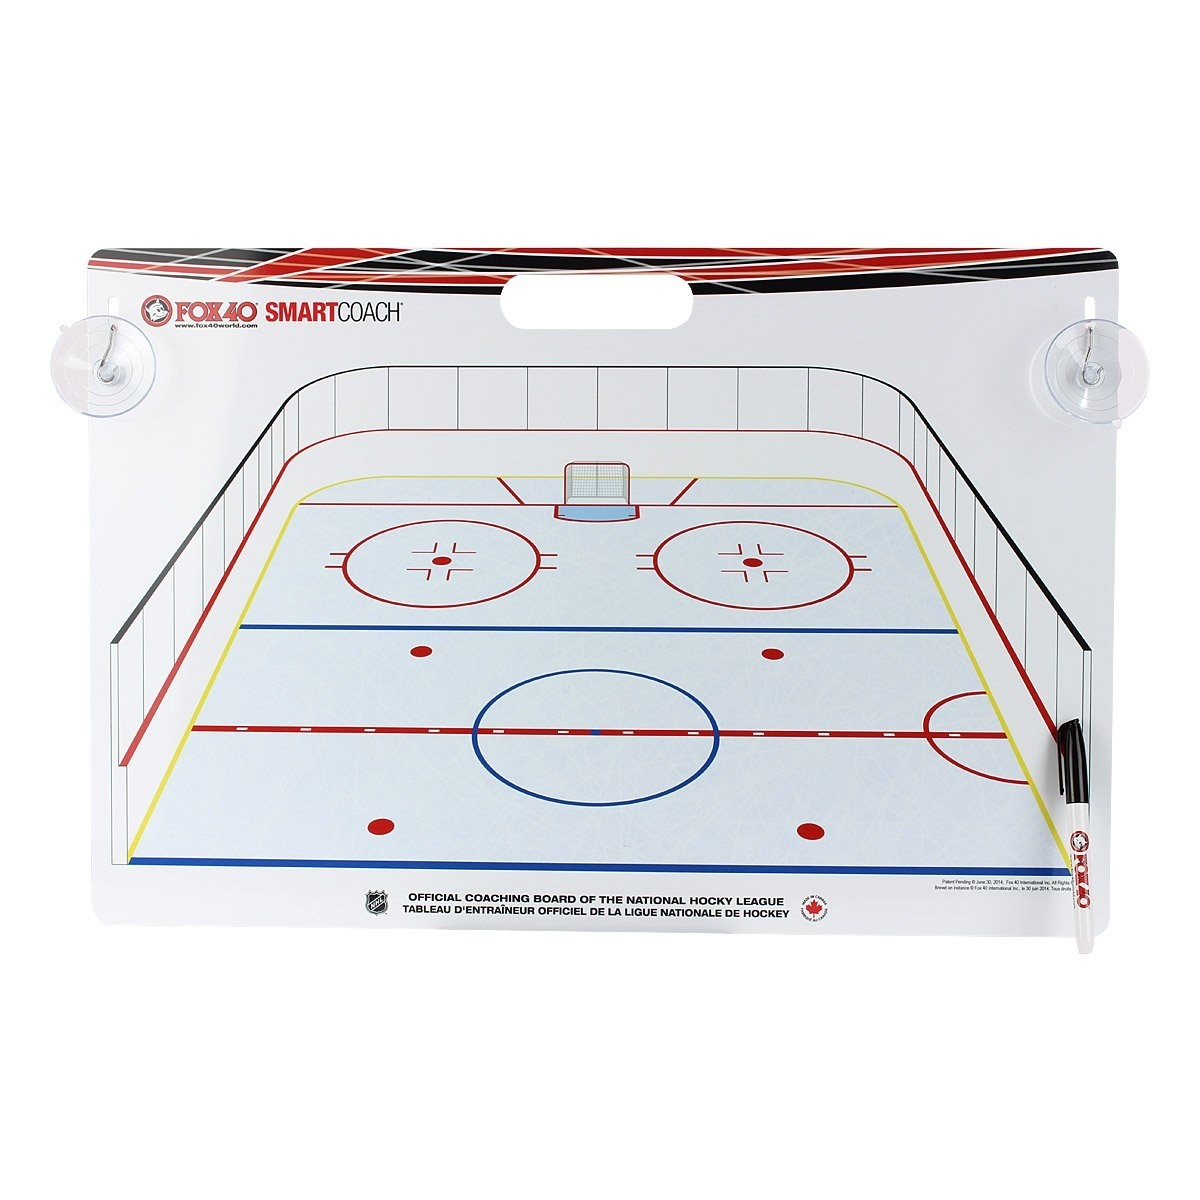 FOX 40 Deluxe Pro Clipboard + Rigid Kit International Hockey Coaching Board